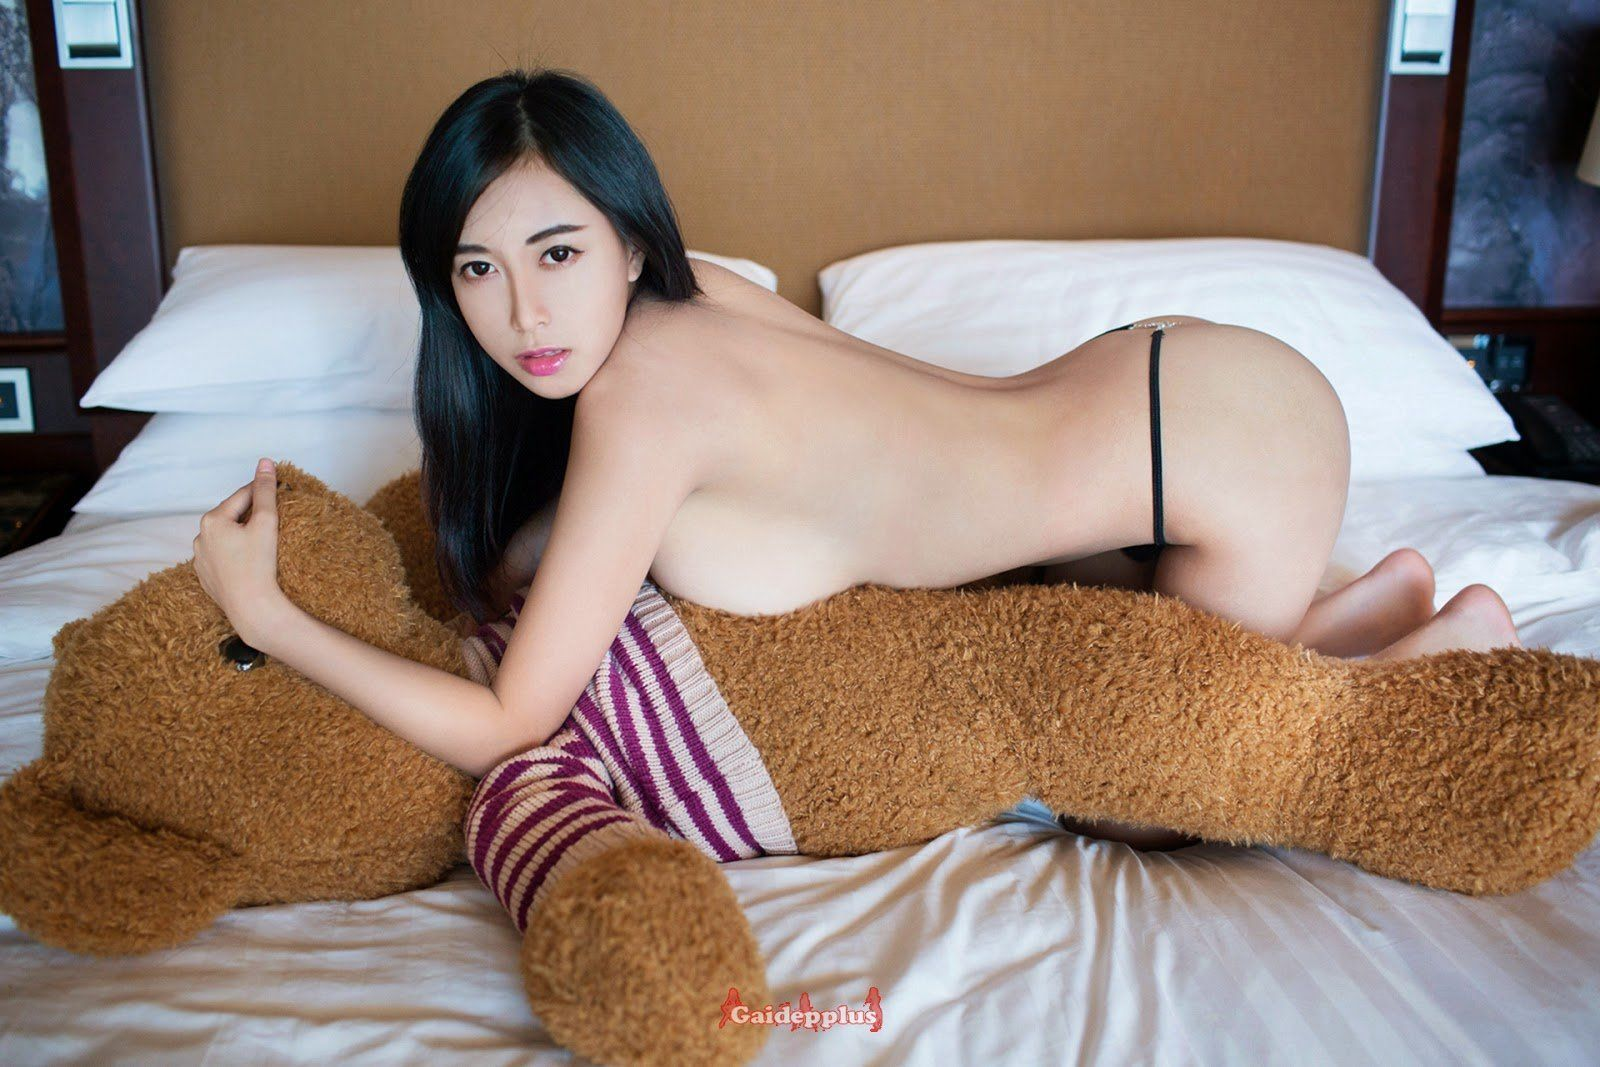 Cannot be! girls with teddy bear pics porn this remarkable